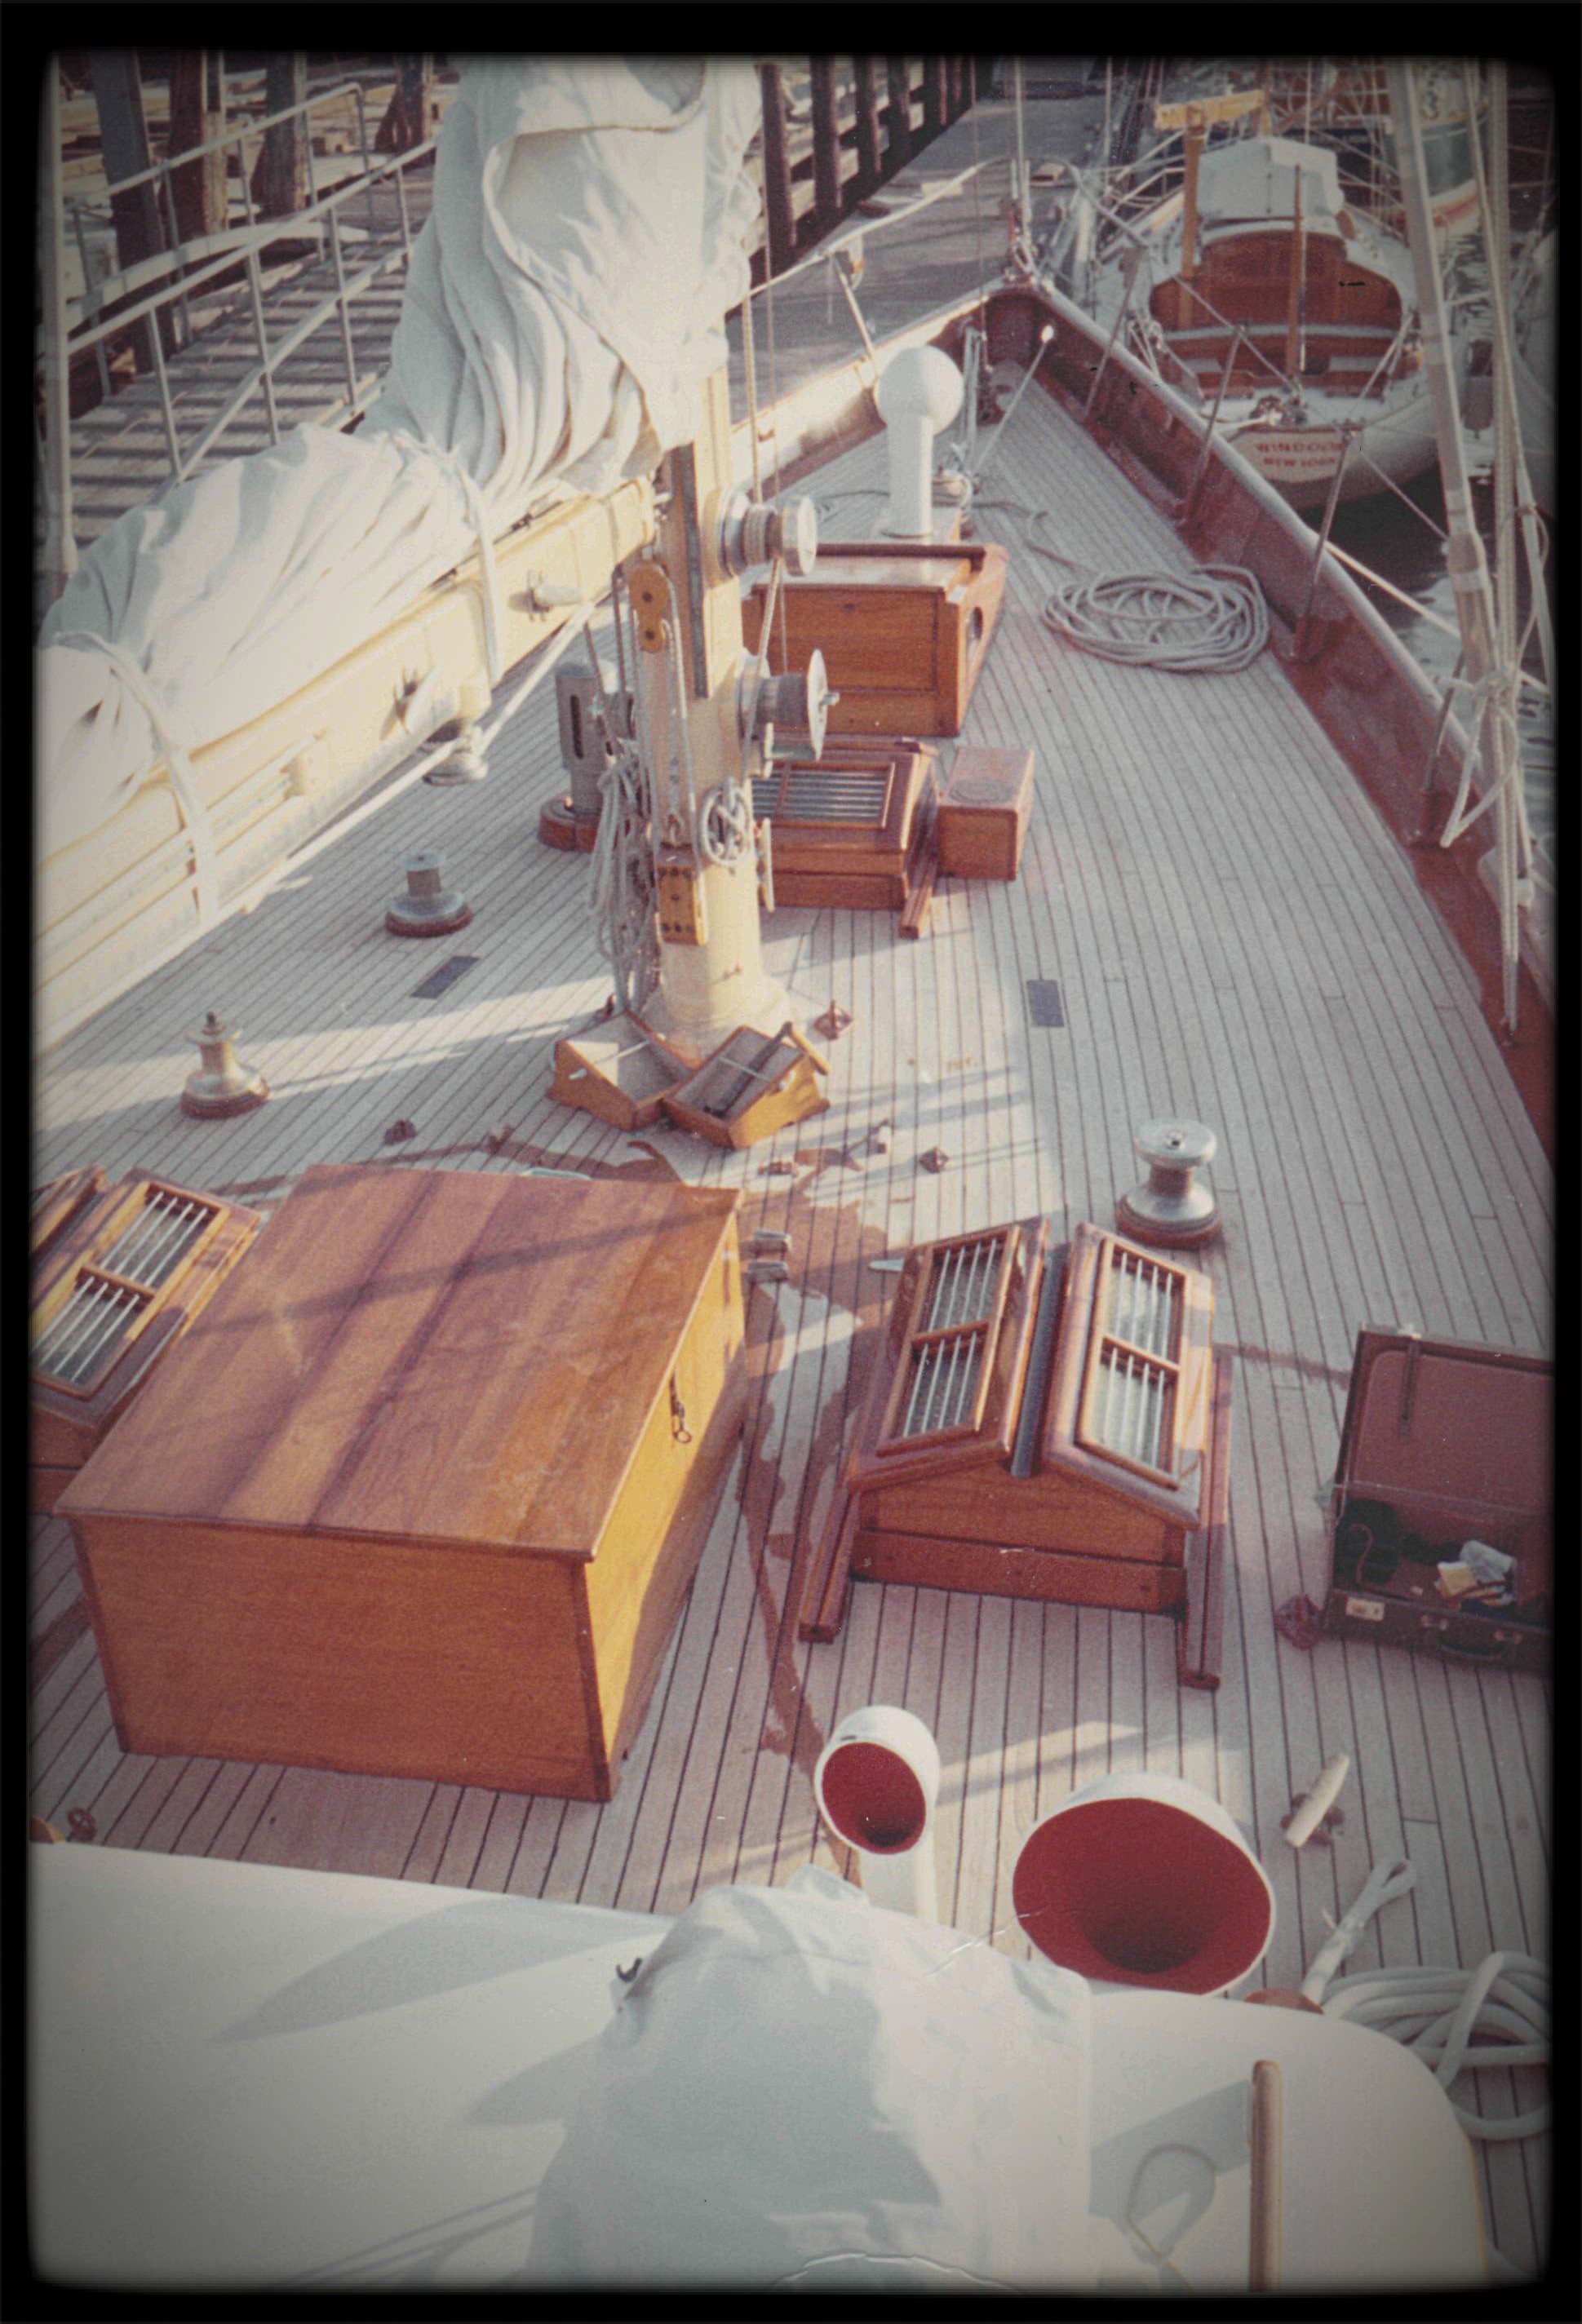 Photo of sailboat Windigo's forward deck area